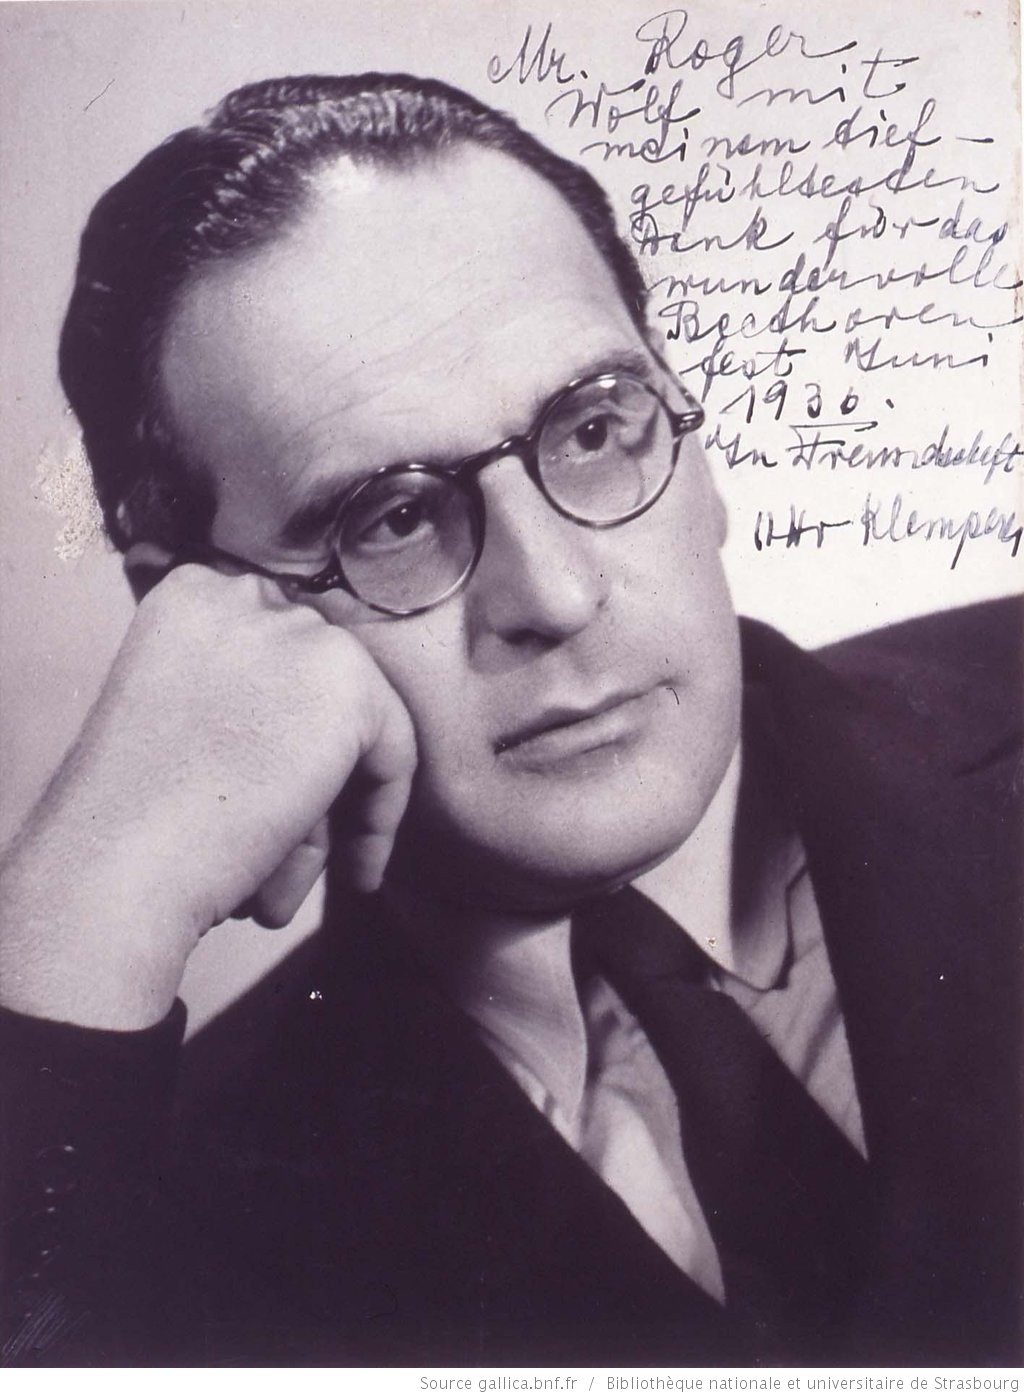 Otto Klemperer: Buste, profil 3/4 à dr., Éditeur: [s.n.], Date d'édition: 1936, Format: 1 photogr.; 24 X 18 cm, Droits: domaine public, Identifiant: ark:/12148/btv1b10219483s, Source: Bibliothèque nationale et universitaire de Strasbourg, NIM34267, lien catalogue http://catalogue.bnf.fr/ark:/12148/cb419094682, lien photo http://gallica.bnf.fr/ark:/12148/btv1b10219483s.r=Otto+Klemperer.langFR